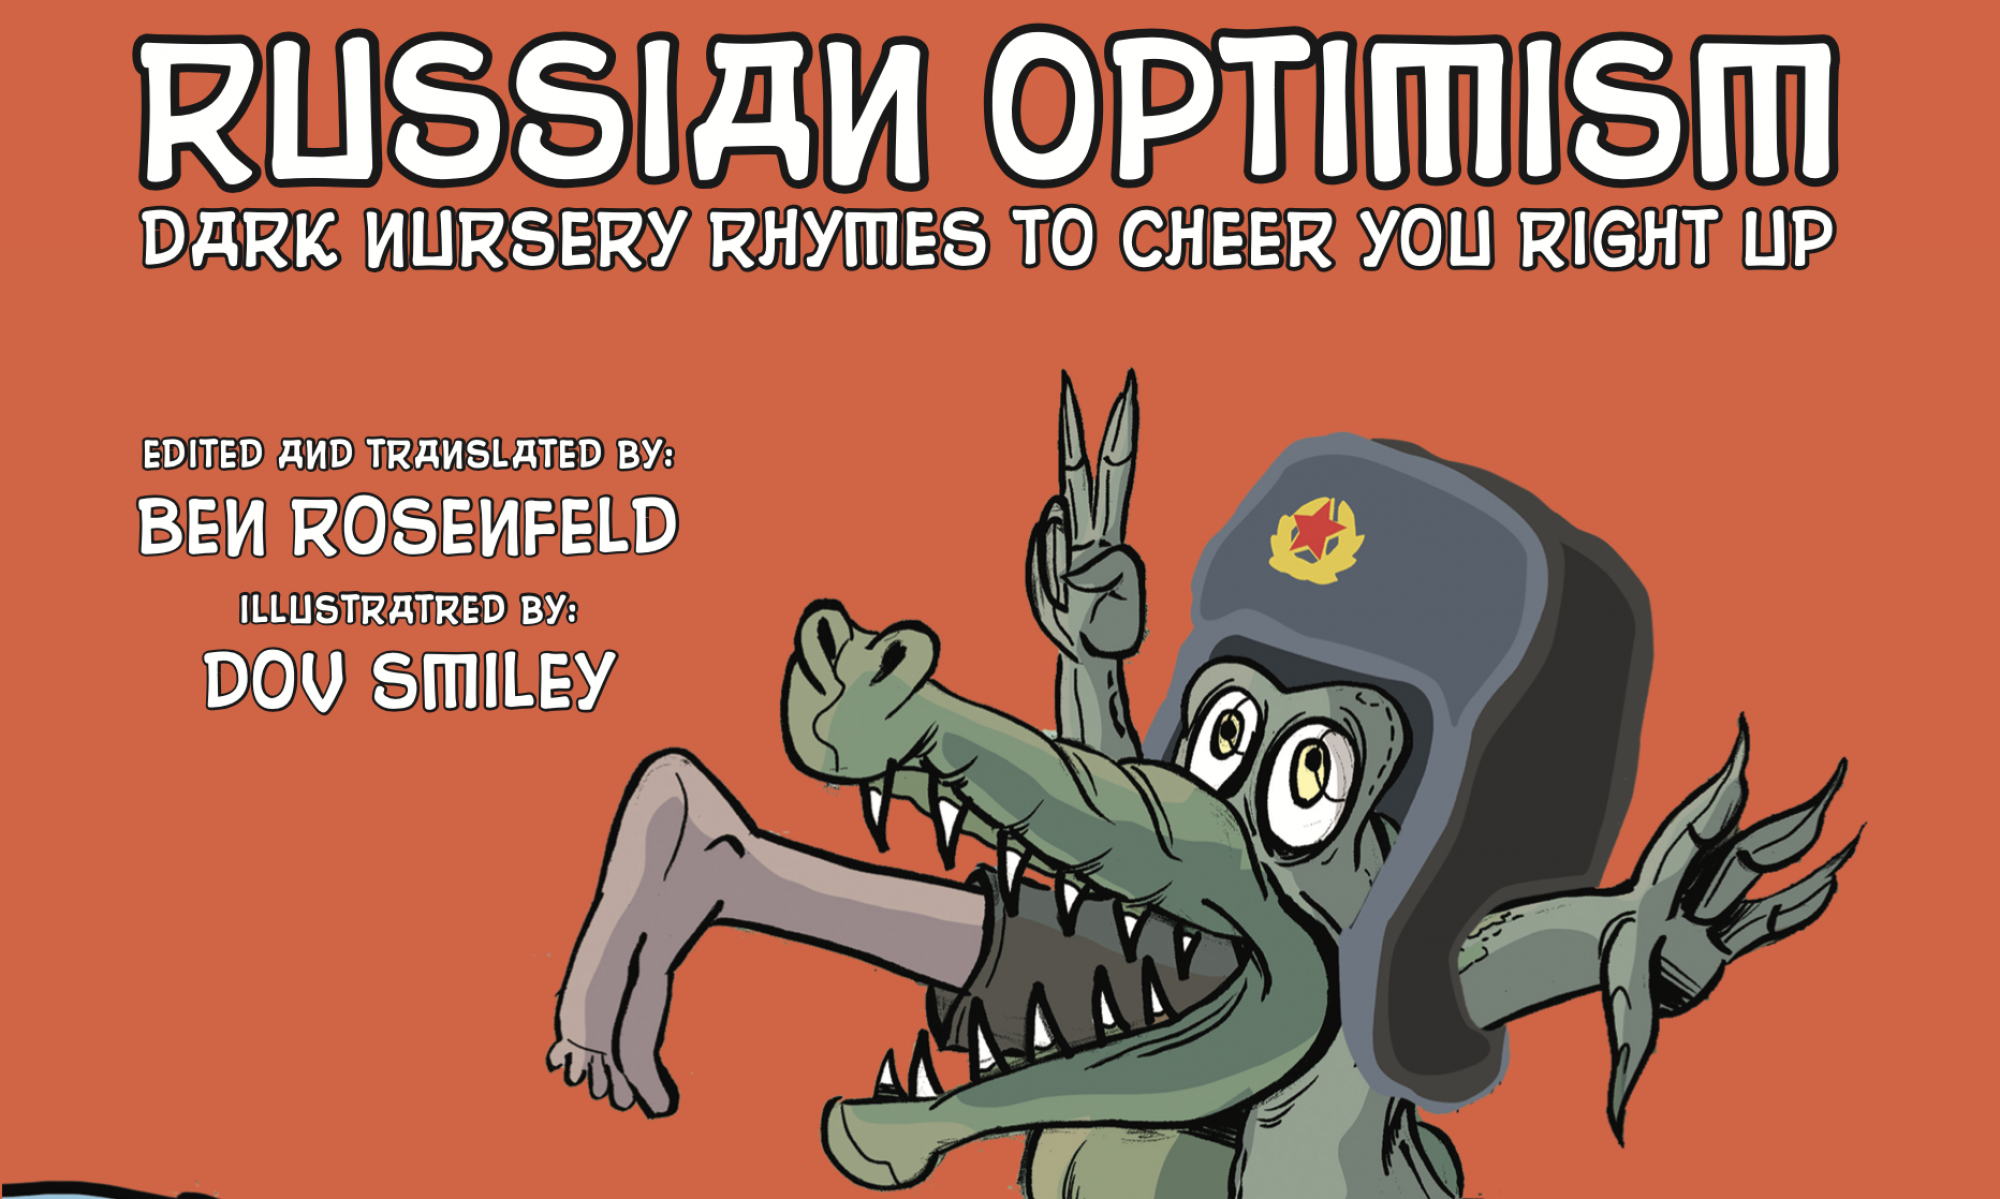 Russian Optimism